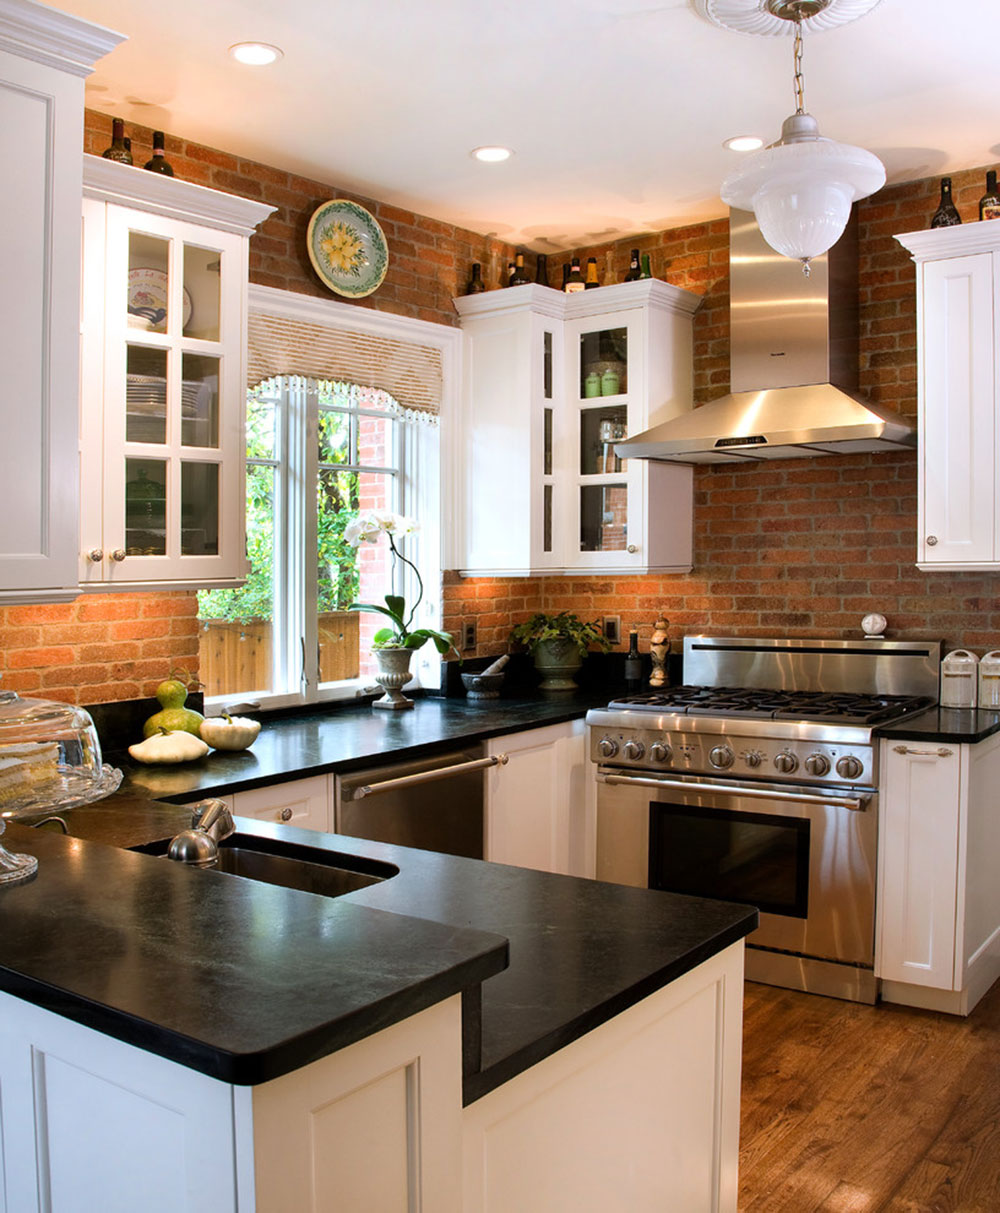 modern brick backsplash kitchen ideas modern kitchen backsplash ideas14 modern brick backsplash kitchen ideas